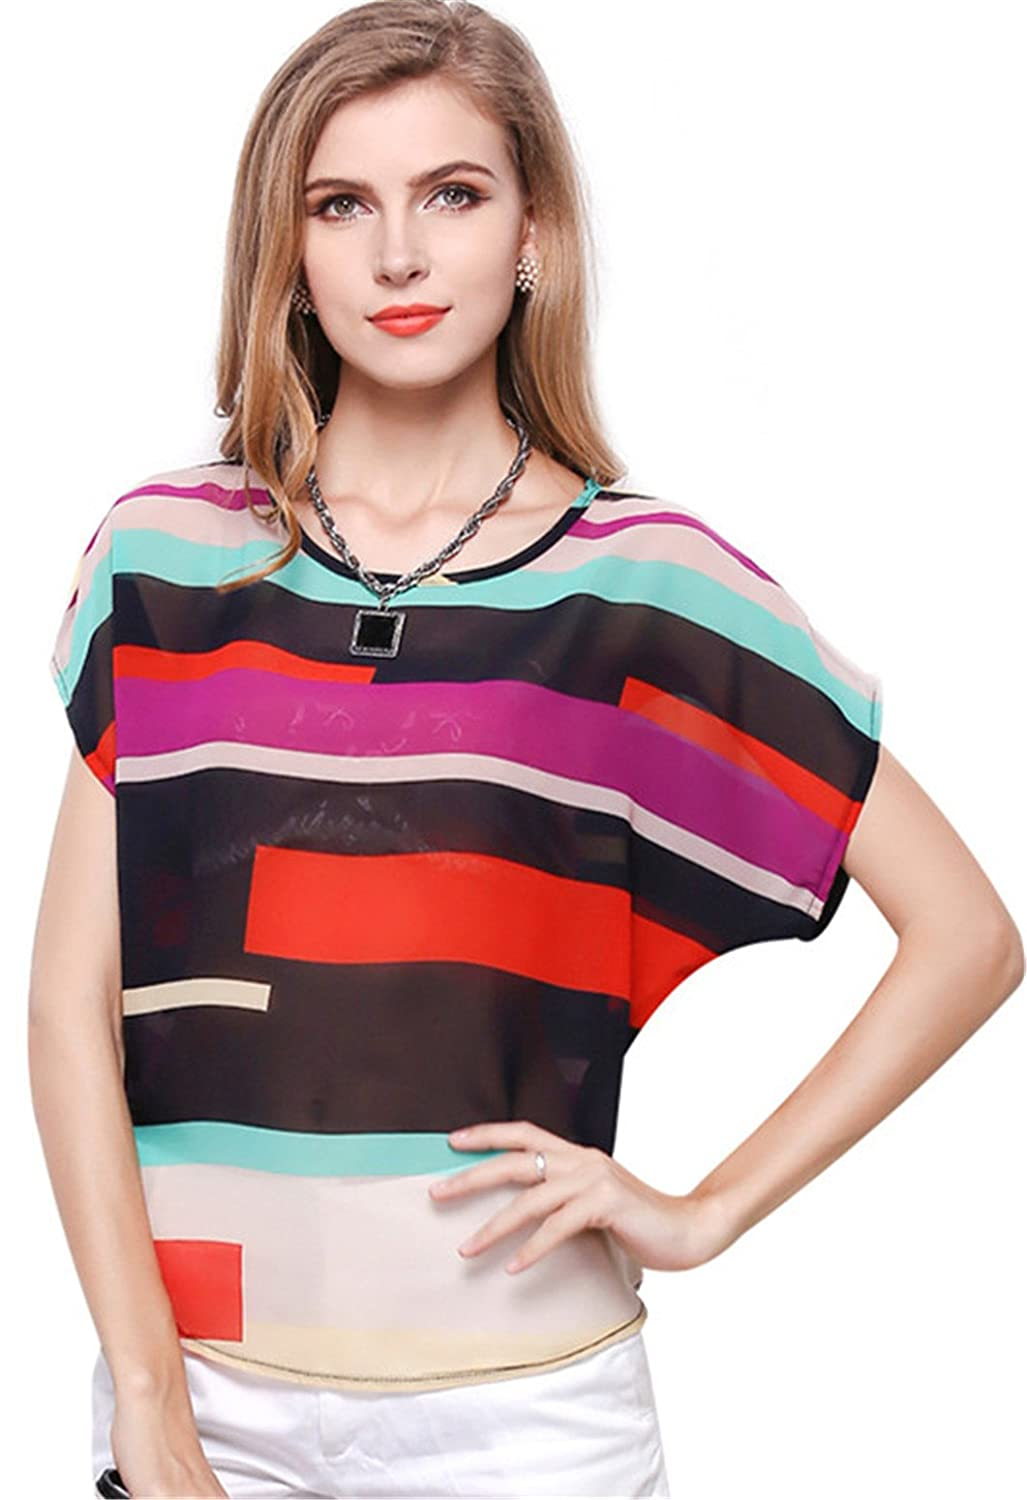 ab48a7d45f088 Arctic Cubic Short Sleeve Batwing Dolman Sleeve Colorful Colorblock Stripe  Sheer Chiffon Blouse Shirt T-Shirt Top at Amazon Women s Clothing store